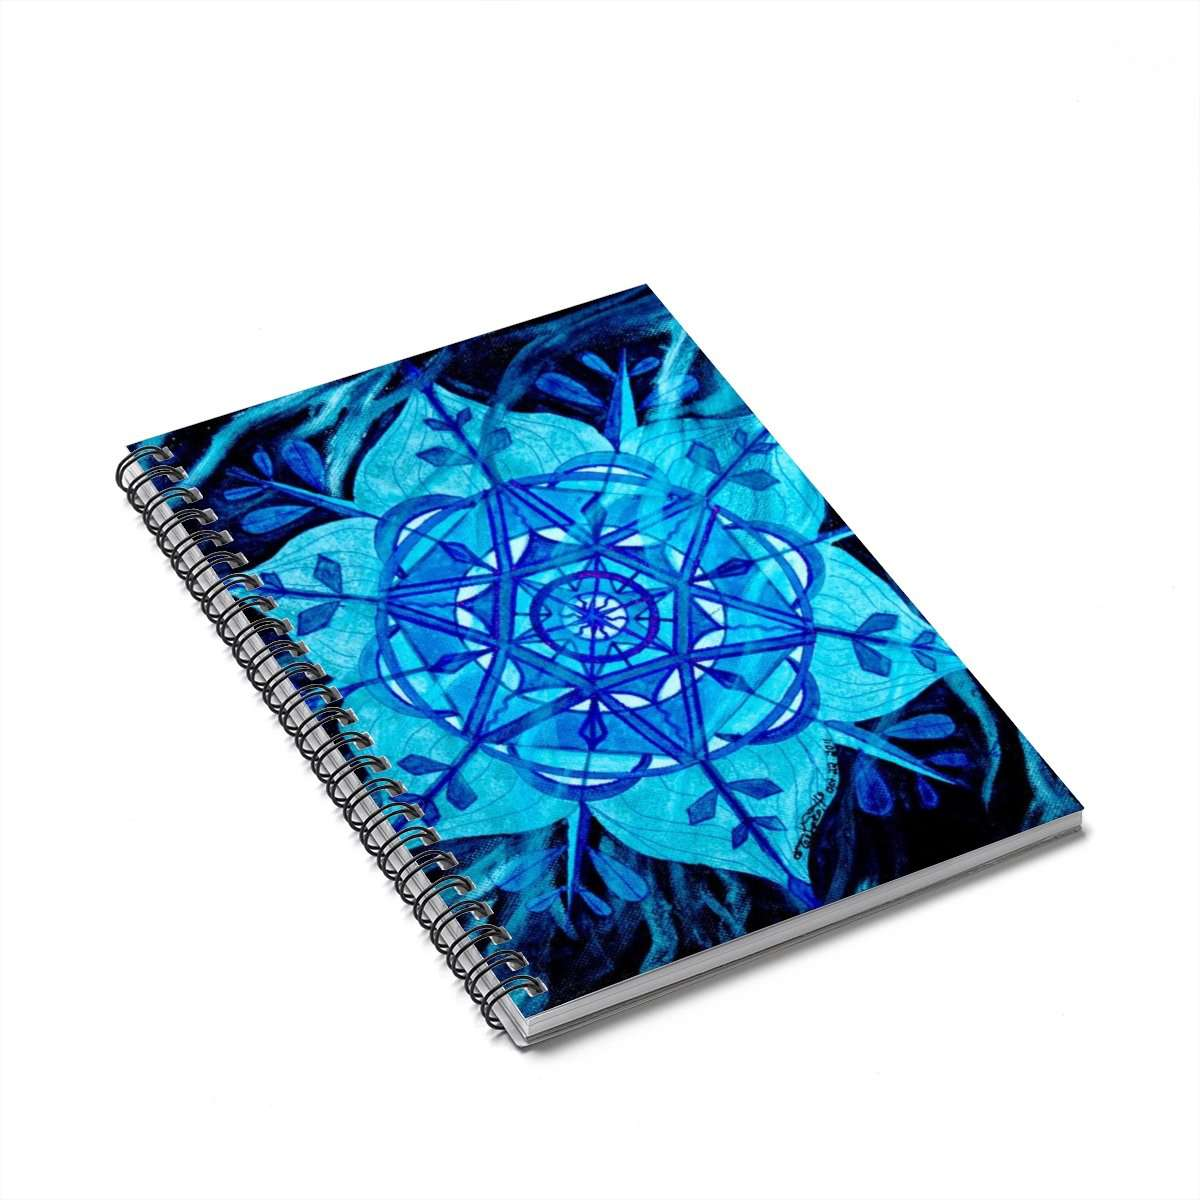 Winter - Spiral Notebook